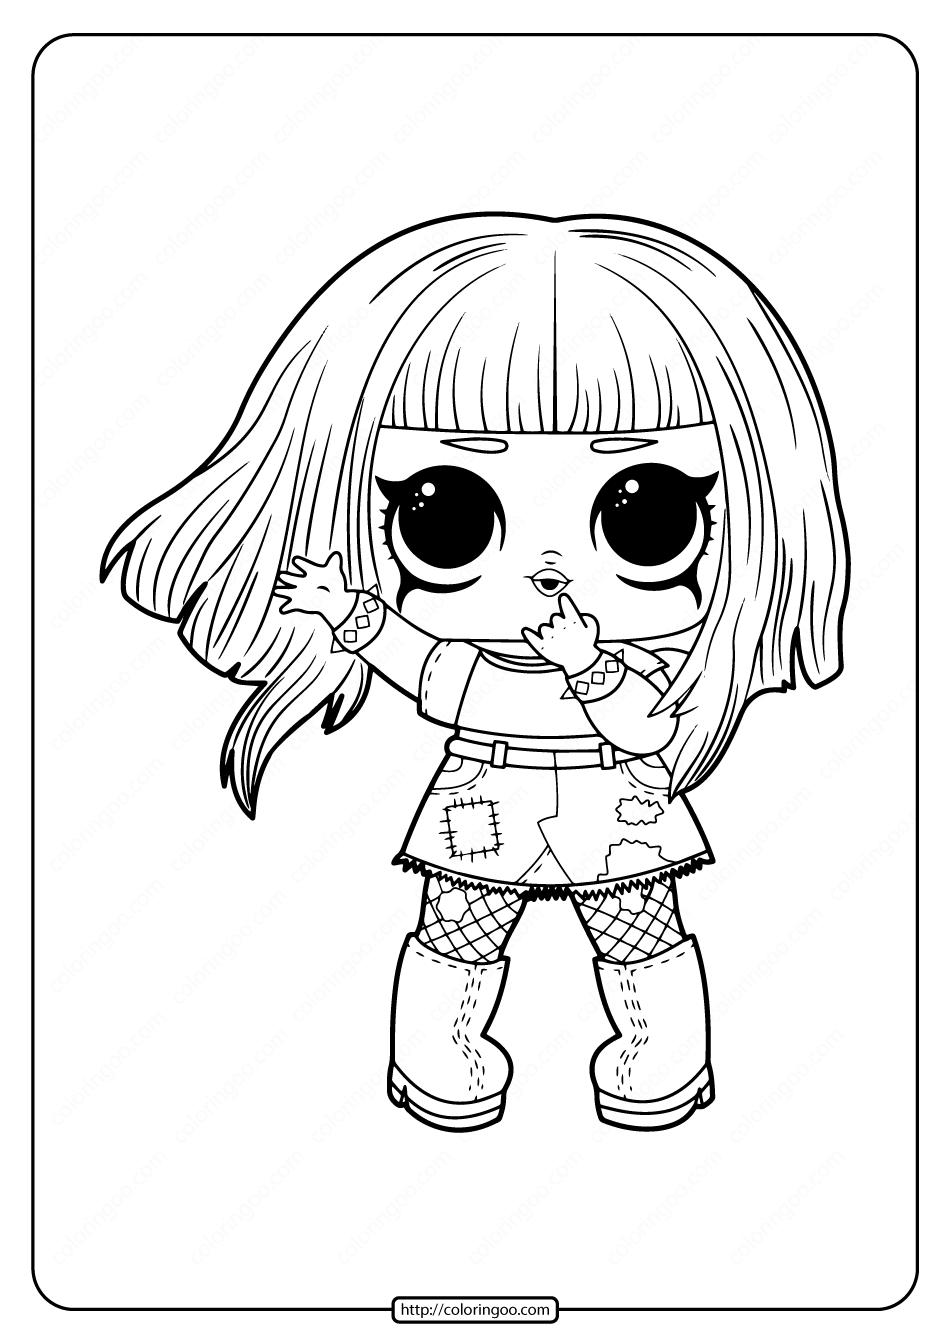 dolls coloring pages mc swag lol doll coloring page free printable coloring pages dolls coloring